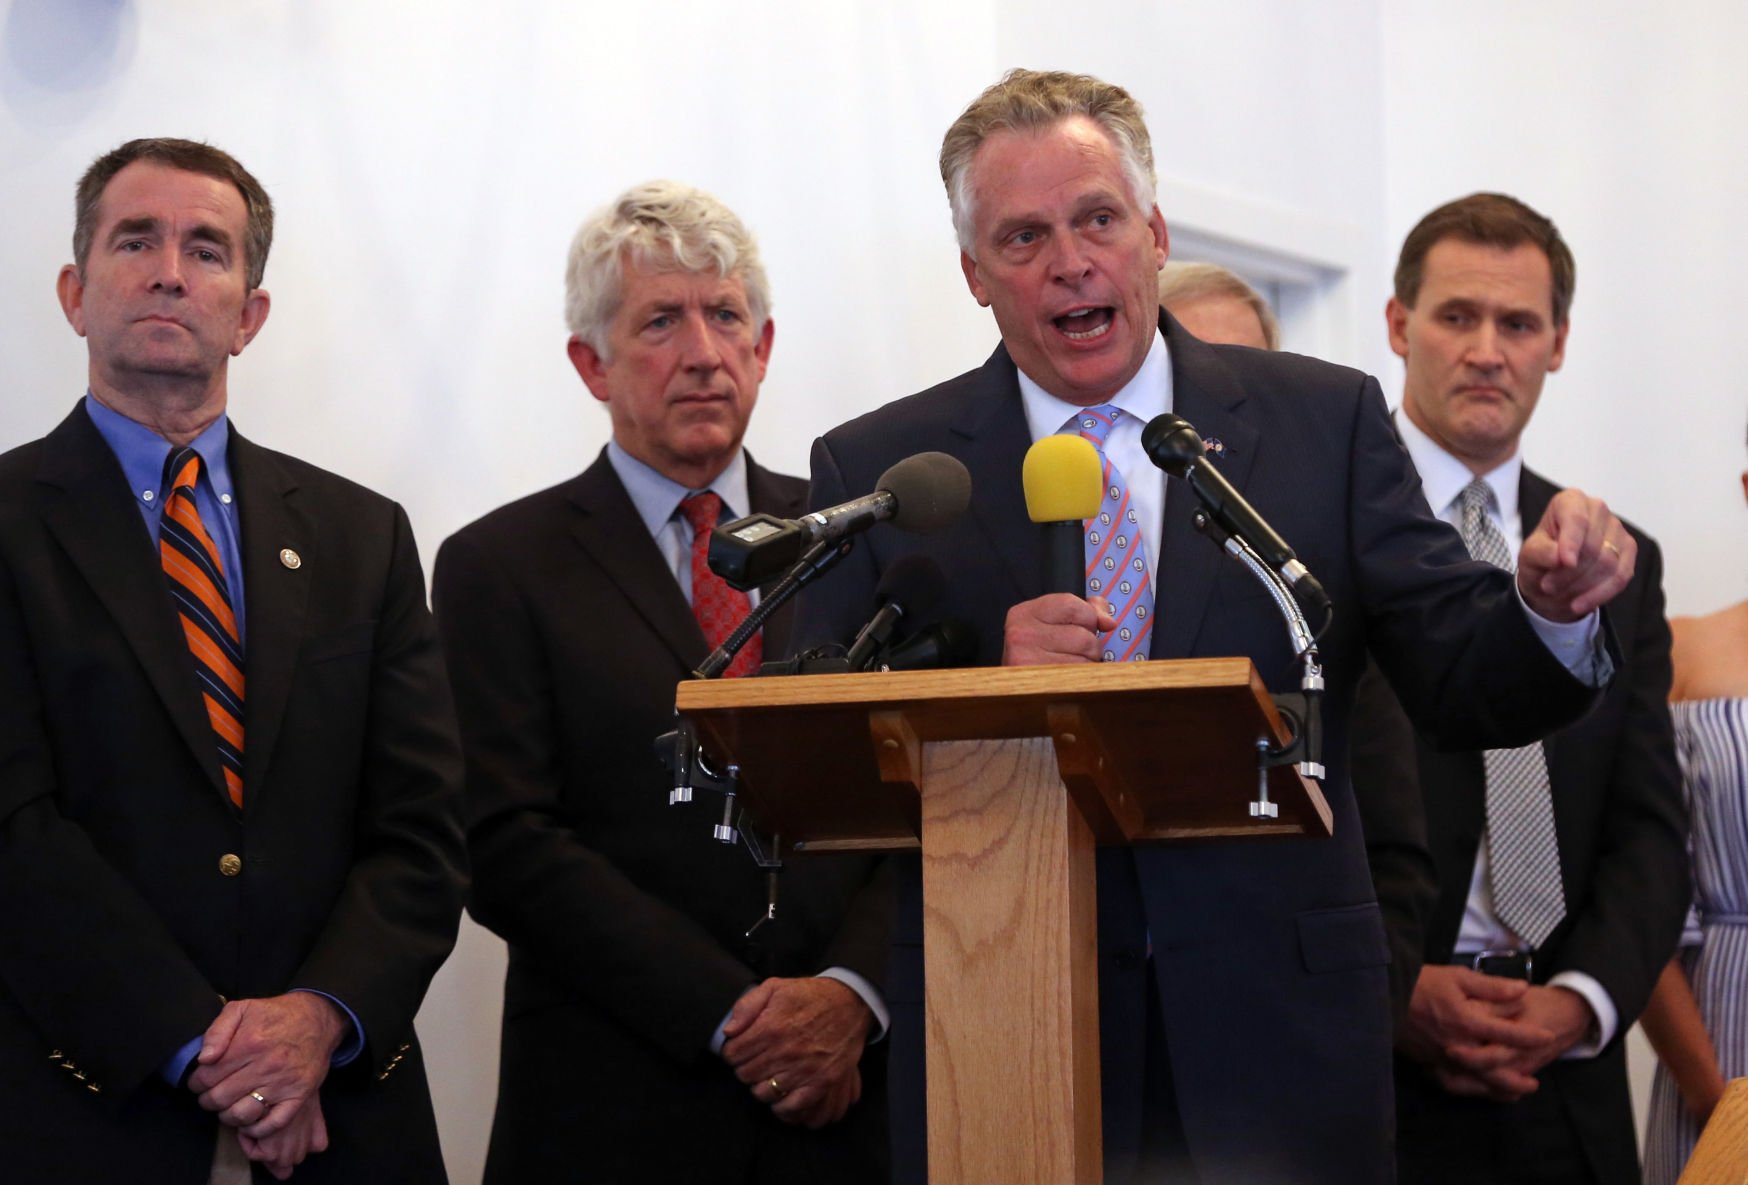 McAuliffe, others offer words of hope at local church services